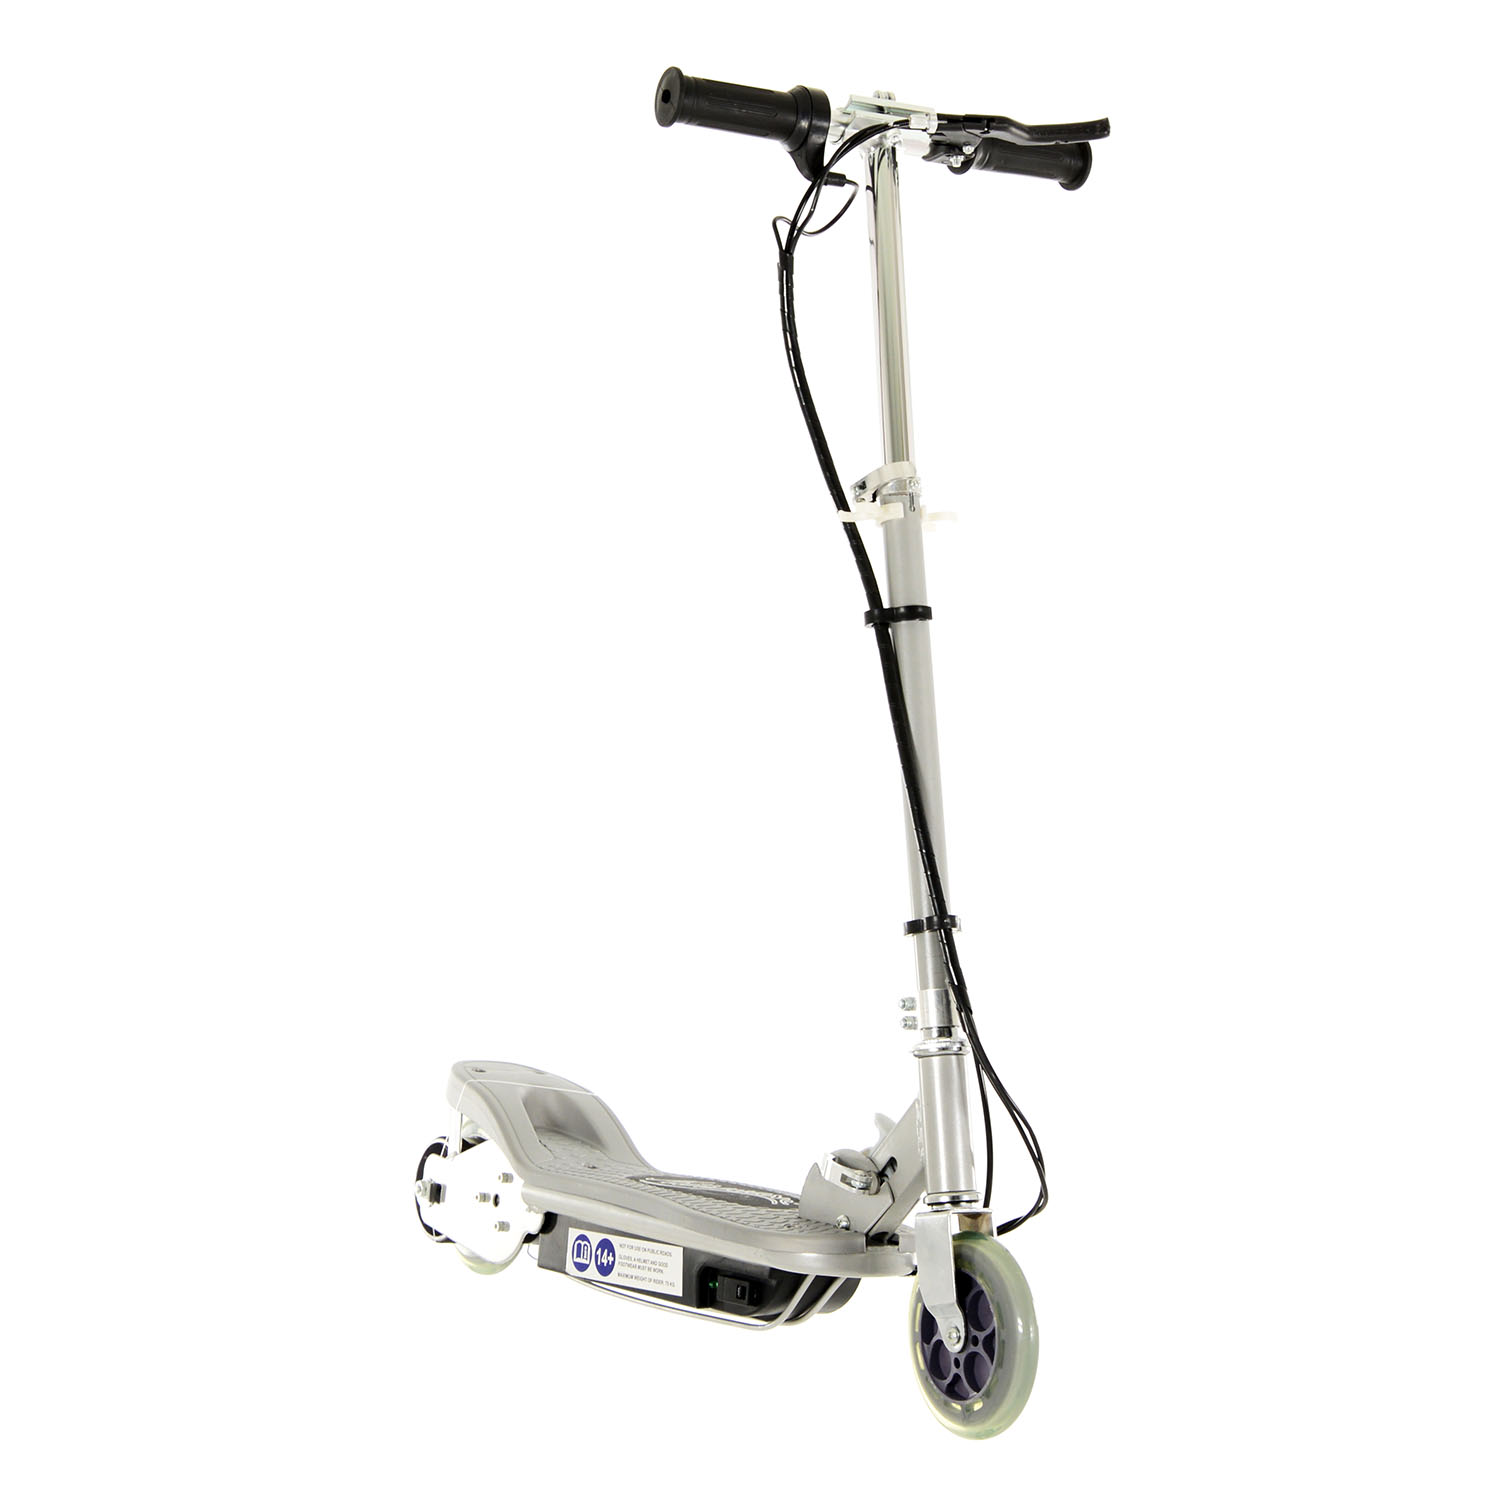 airwave electric kids scooter  24v battery ride on toy